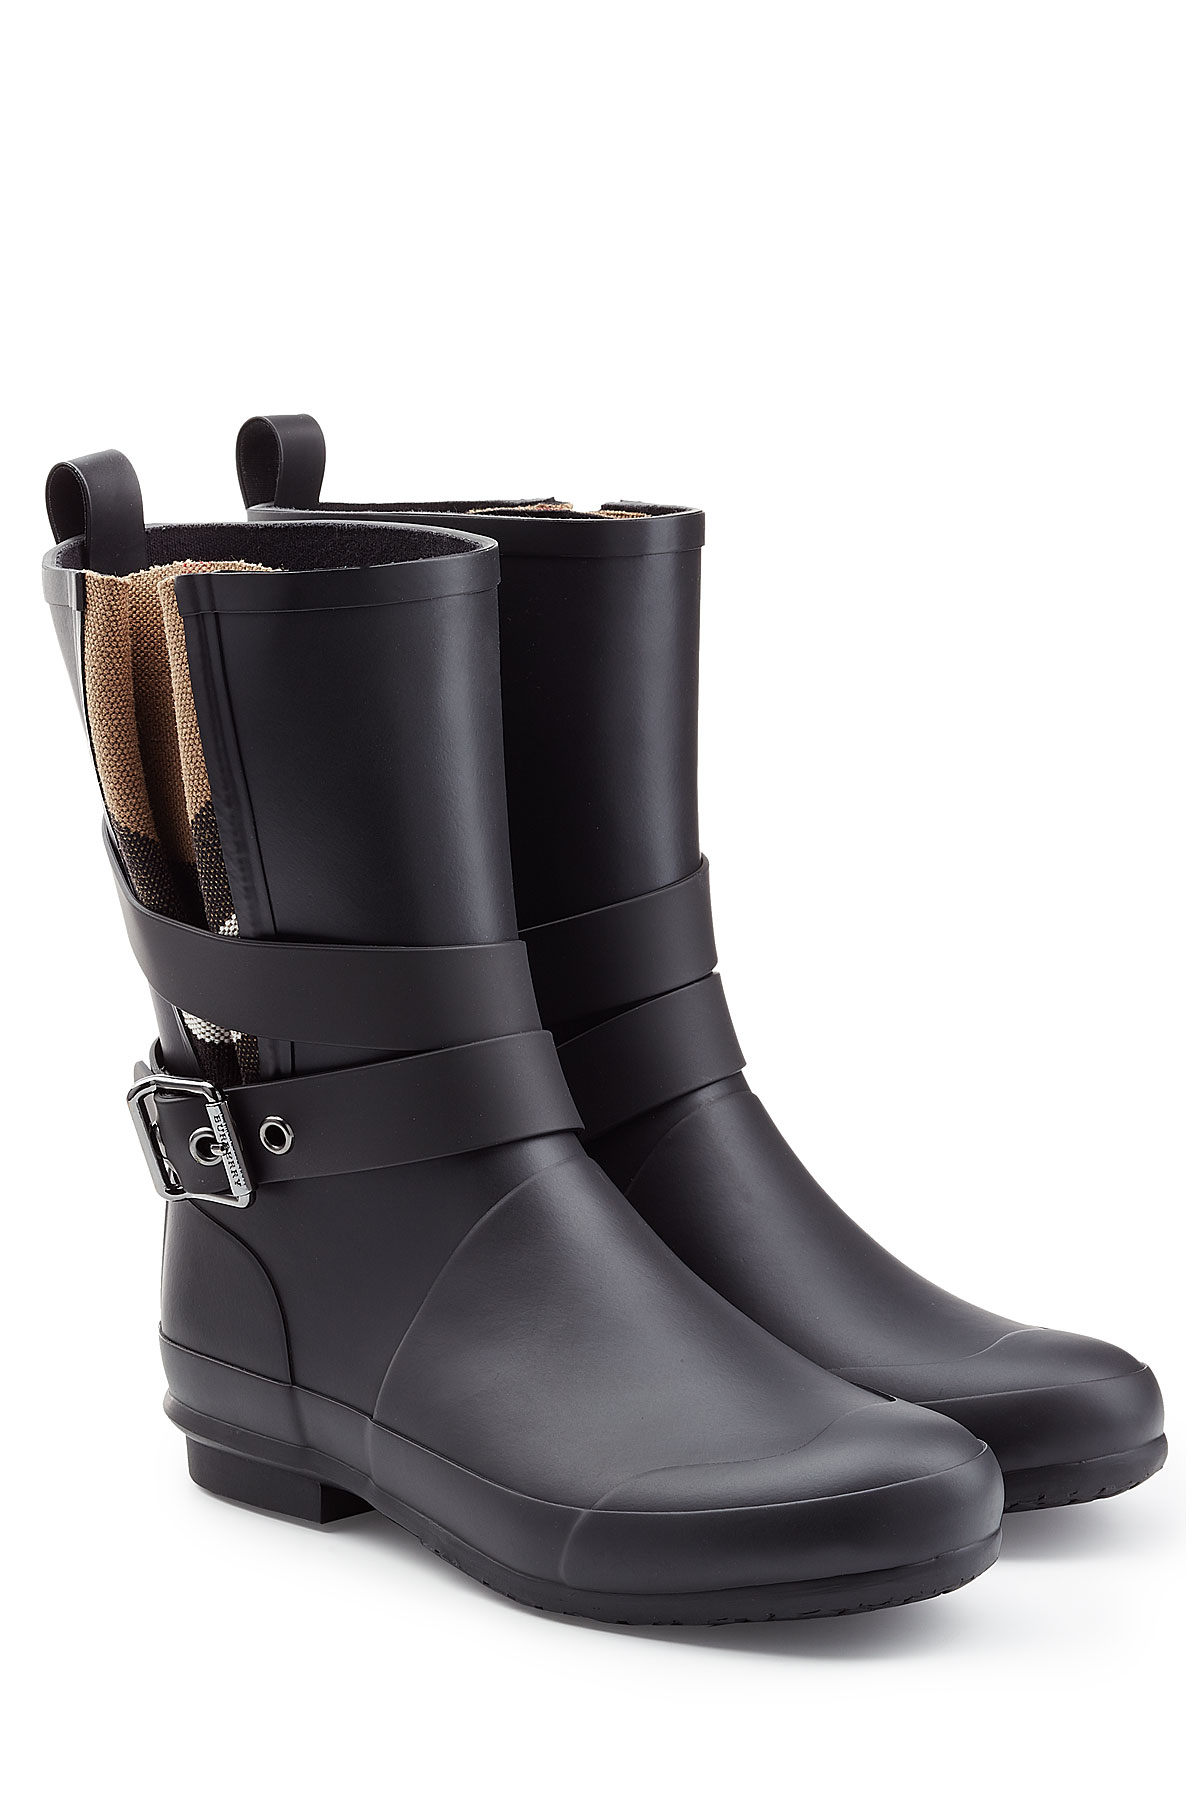 rain boots for women burberry division of global affairs